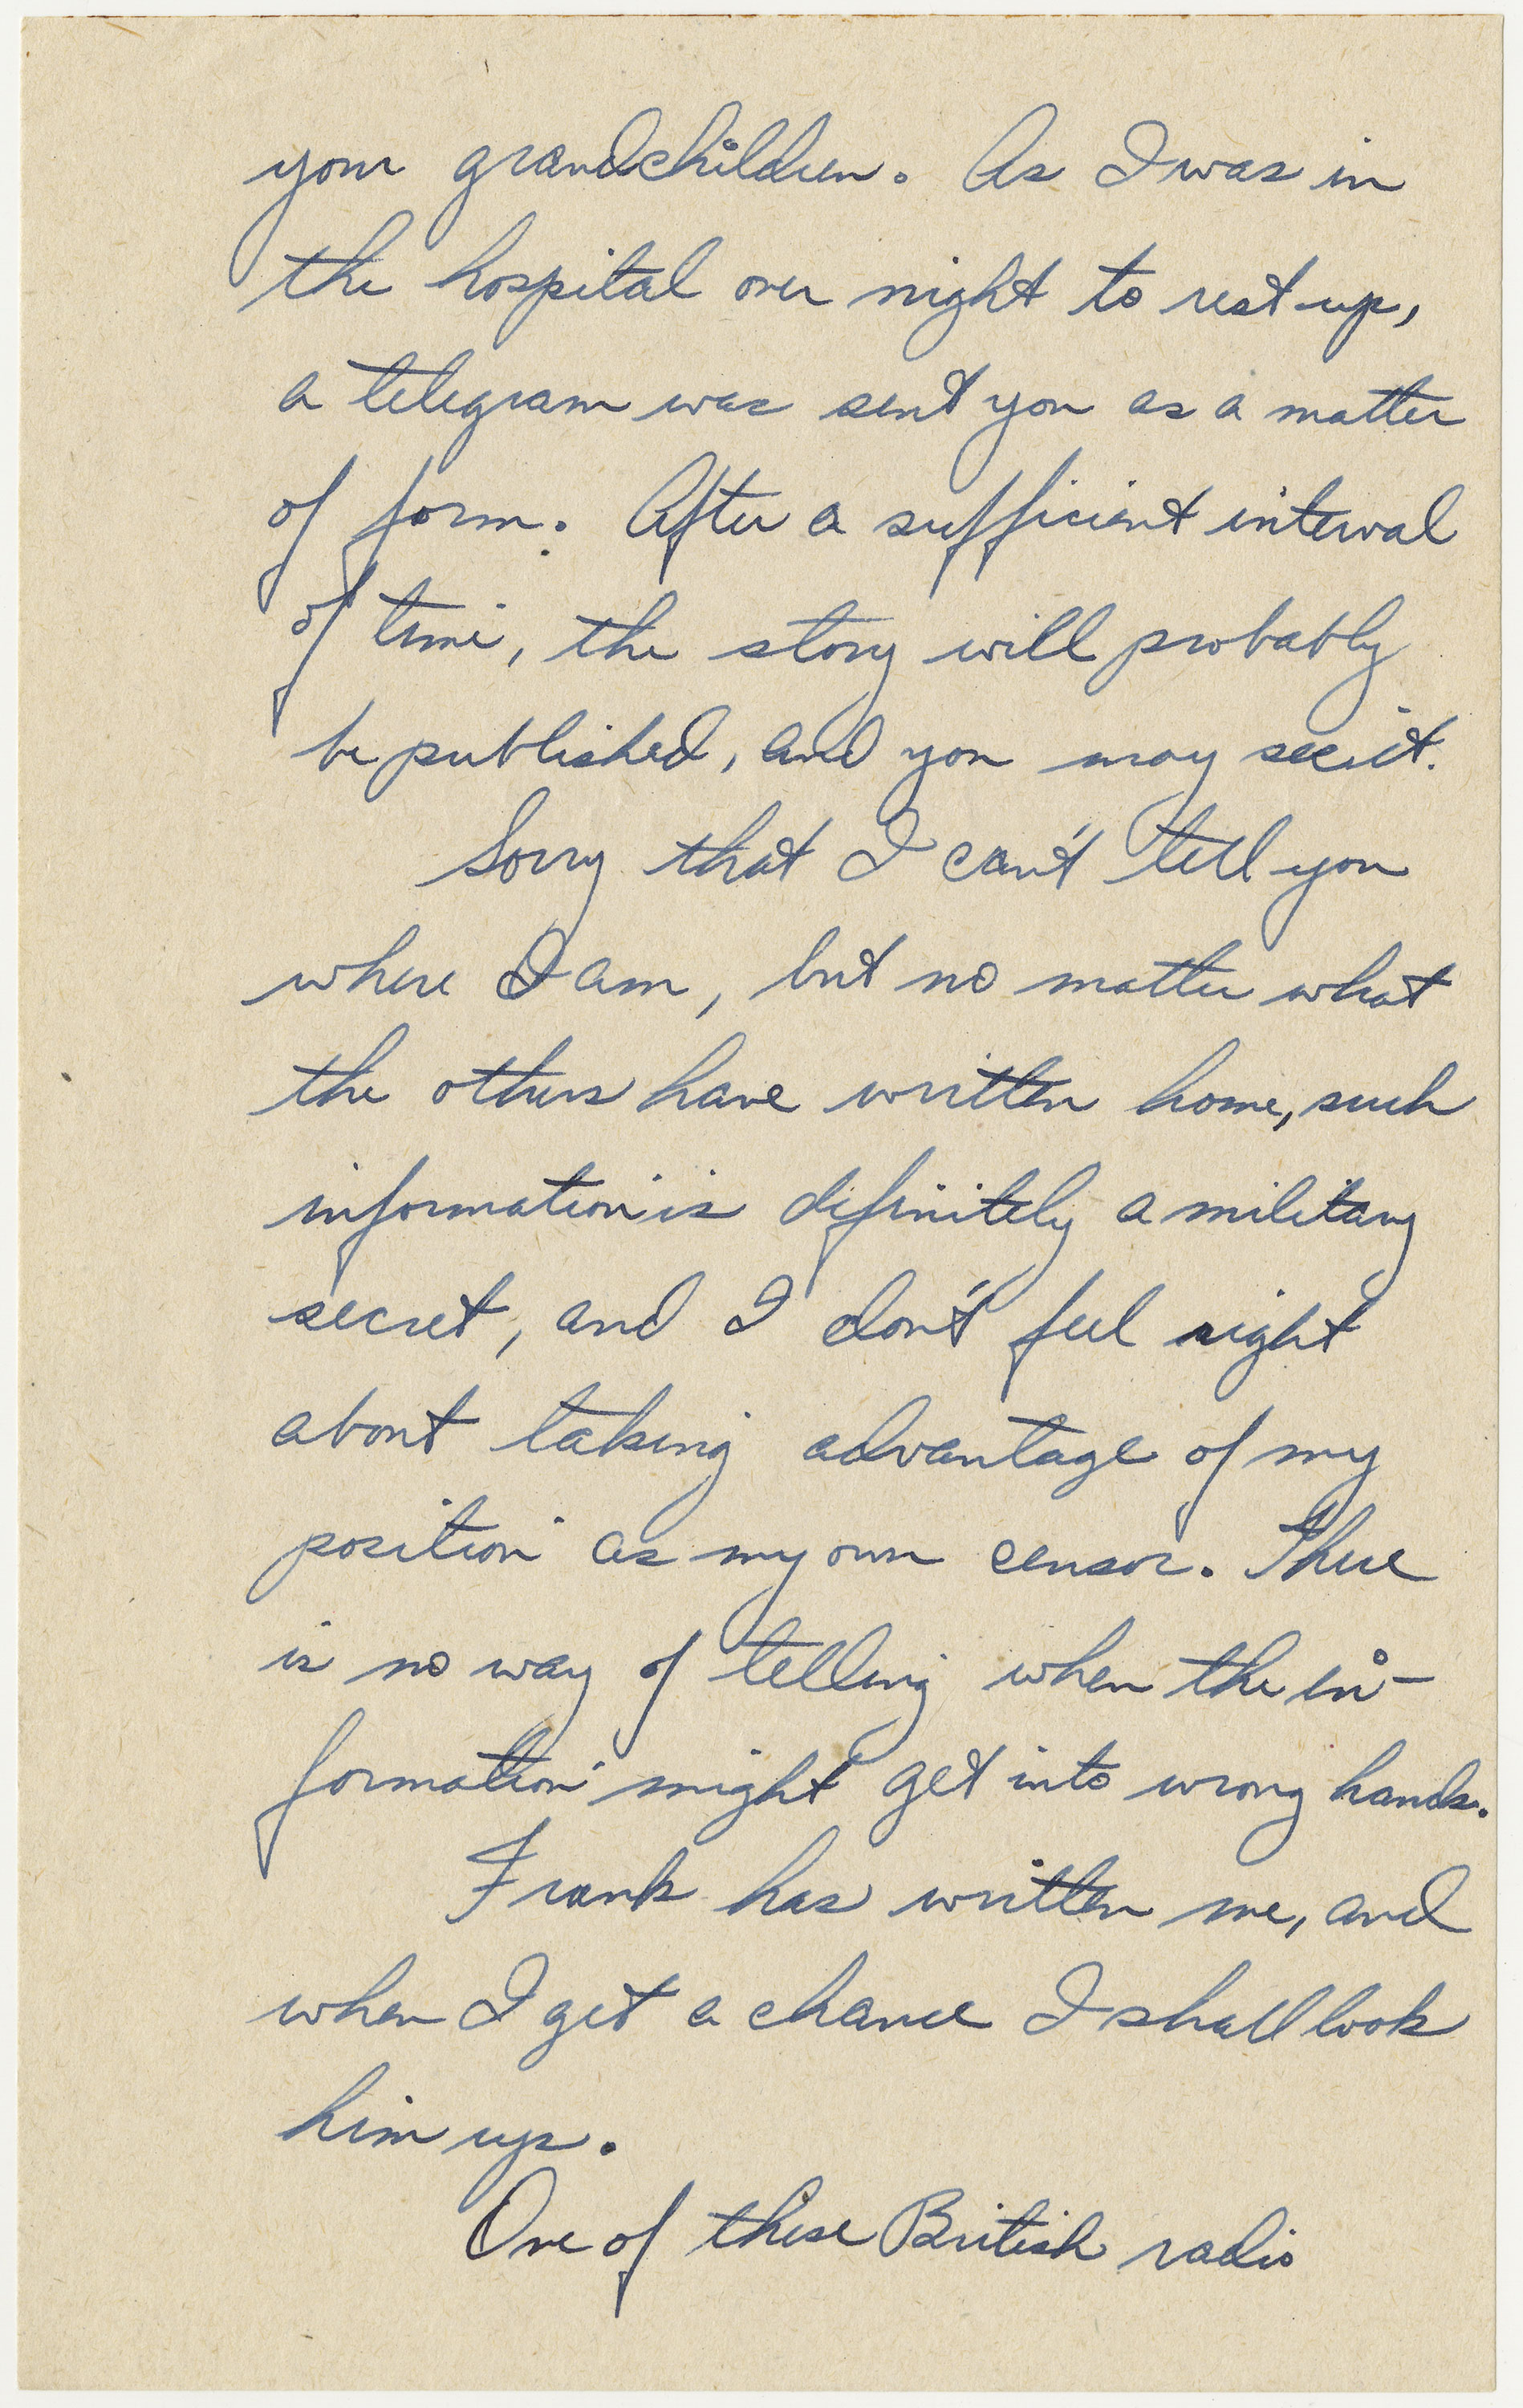 page 3 of letter written by Bischoff on May 12, 1944